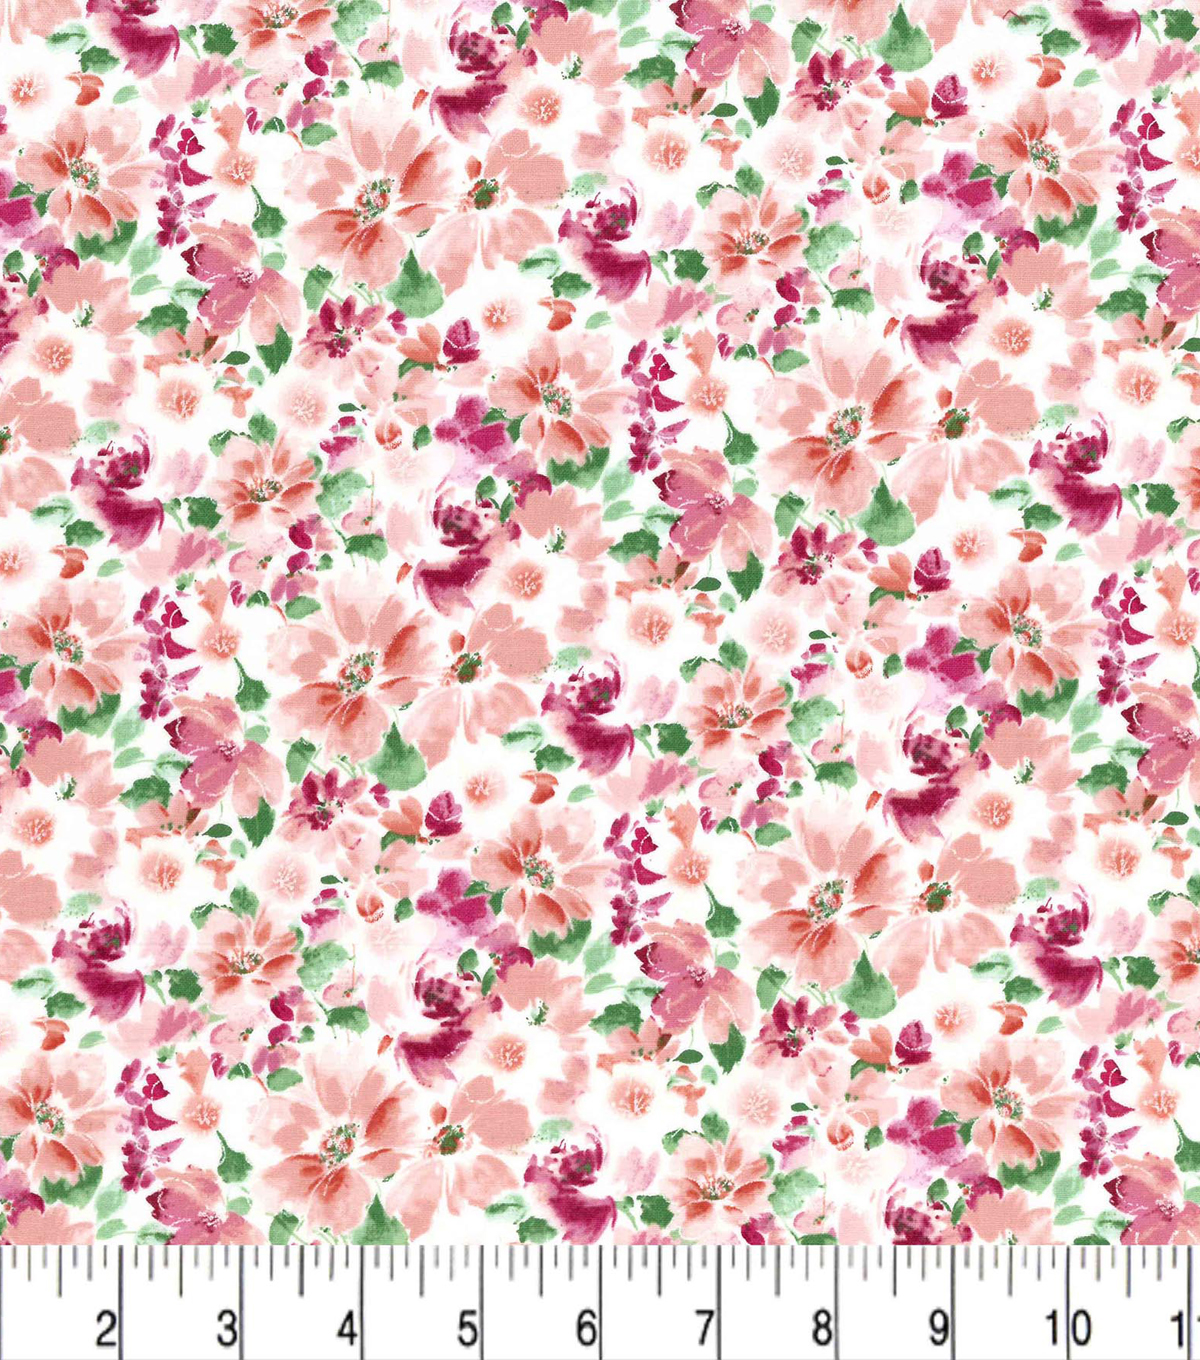 Premium Cotton Fabric -Sketched Floral Pink Pearl